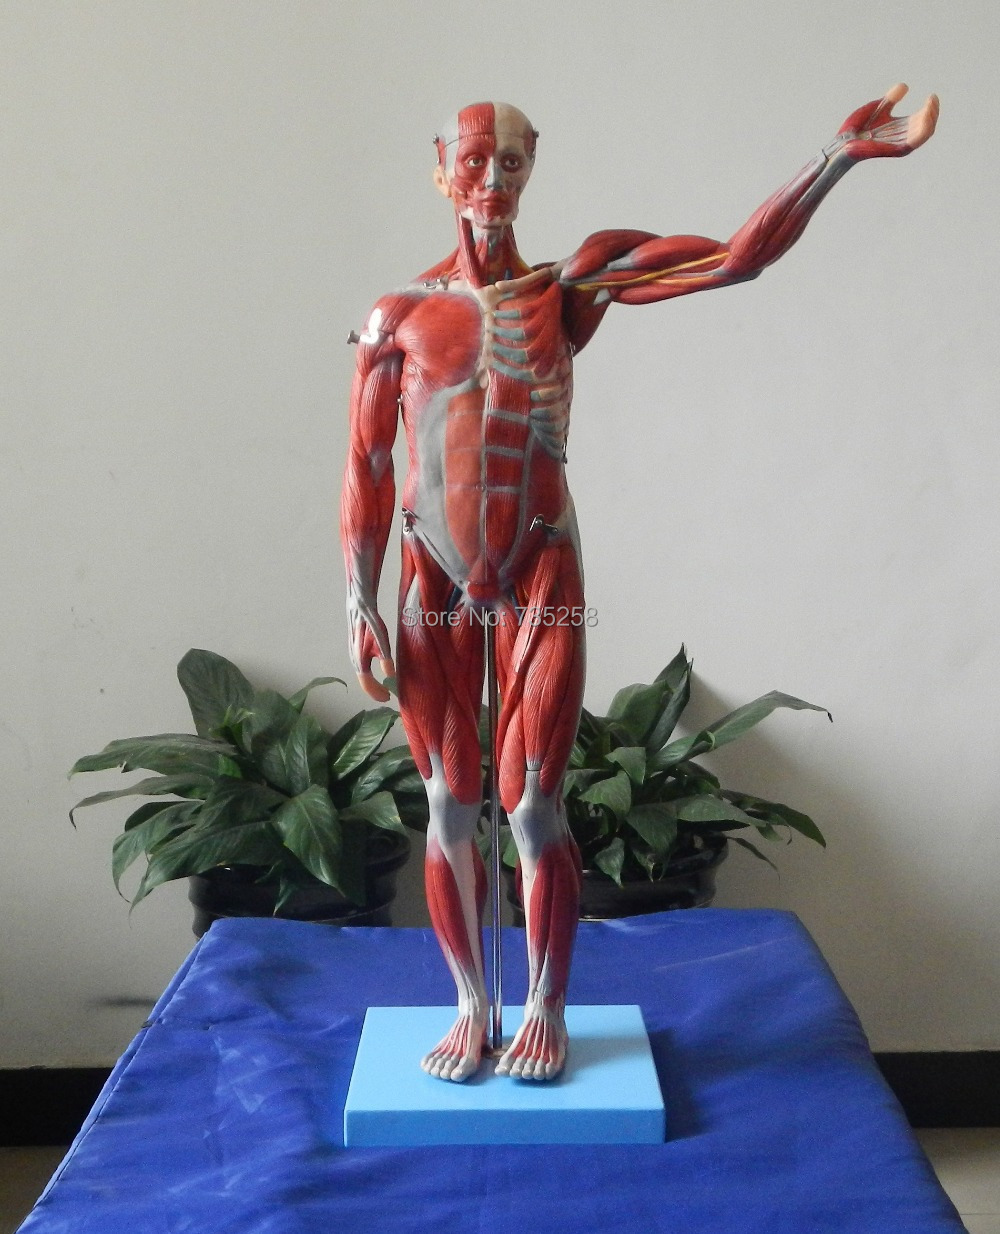 ISO Certification Body Muscles Anatomical Model,78cm Human Anatomy Model,Human Organ Anatomical Model iso sound auditory mediation model acoustoelectric control human hearing model